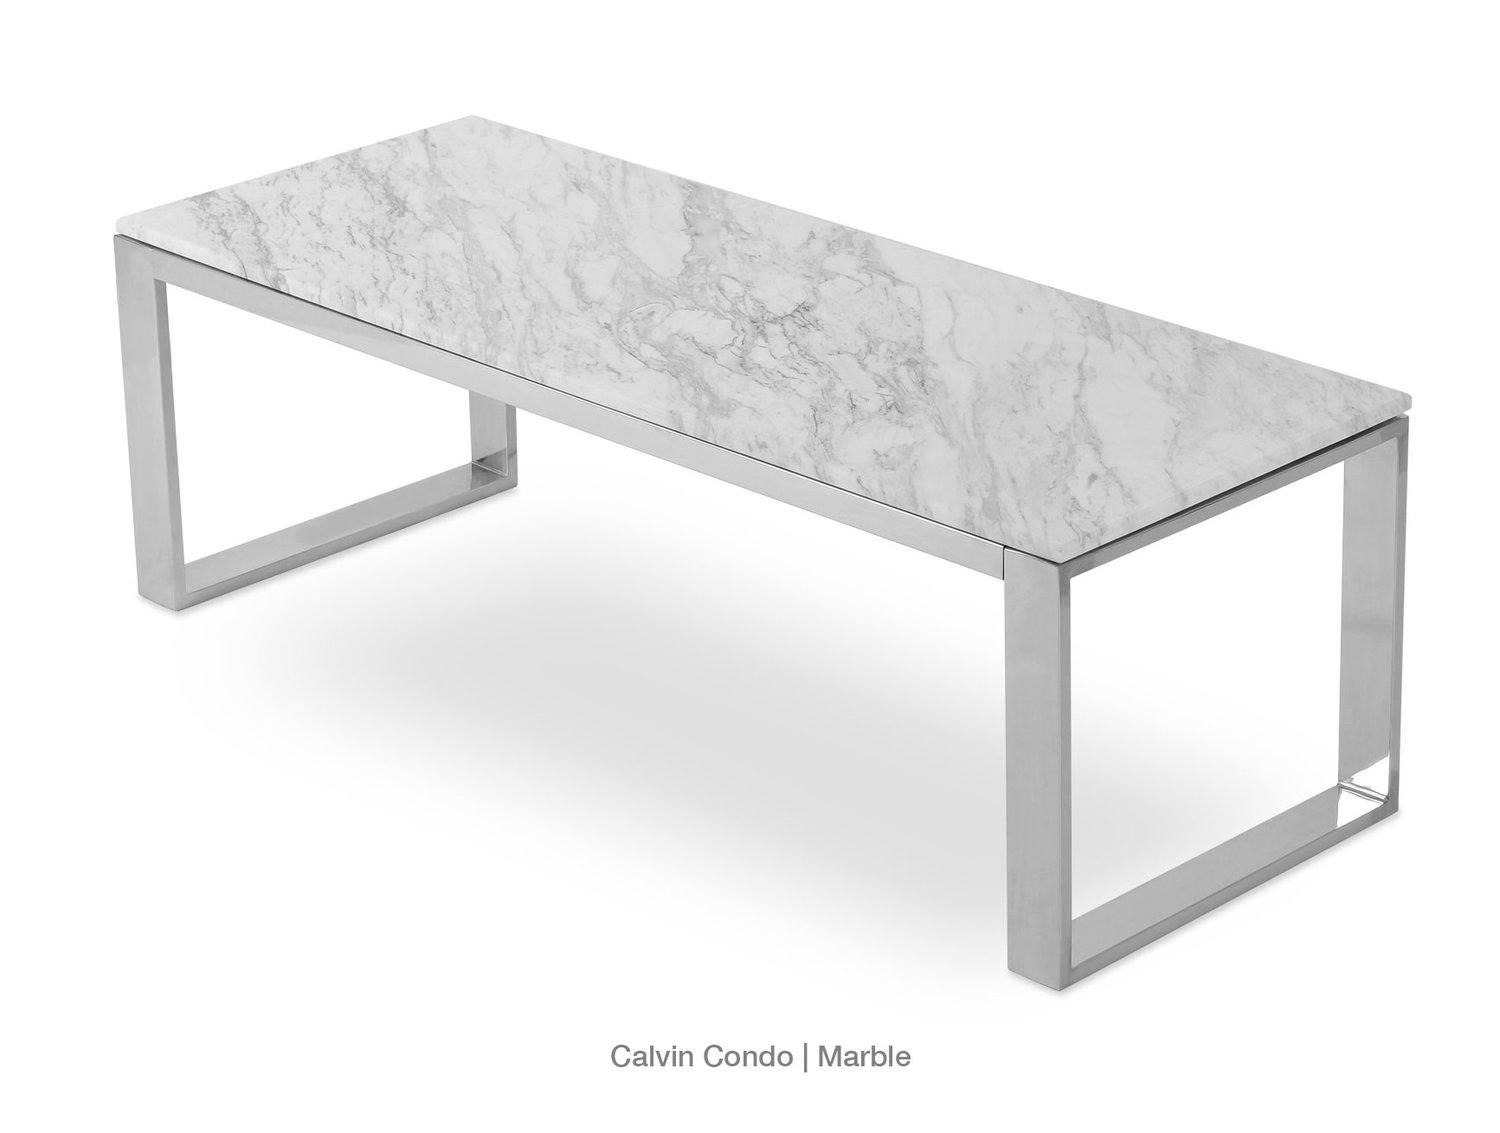 Calvin Condo Table White Marble SohoConcept At MetropolitanDecor - Calvin coffee table